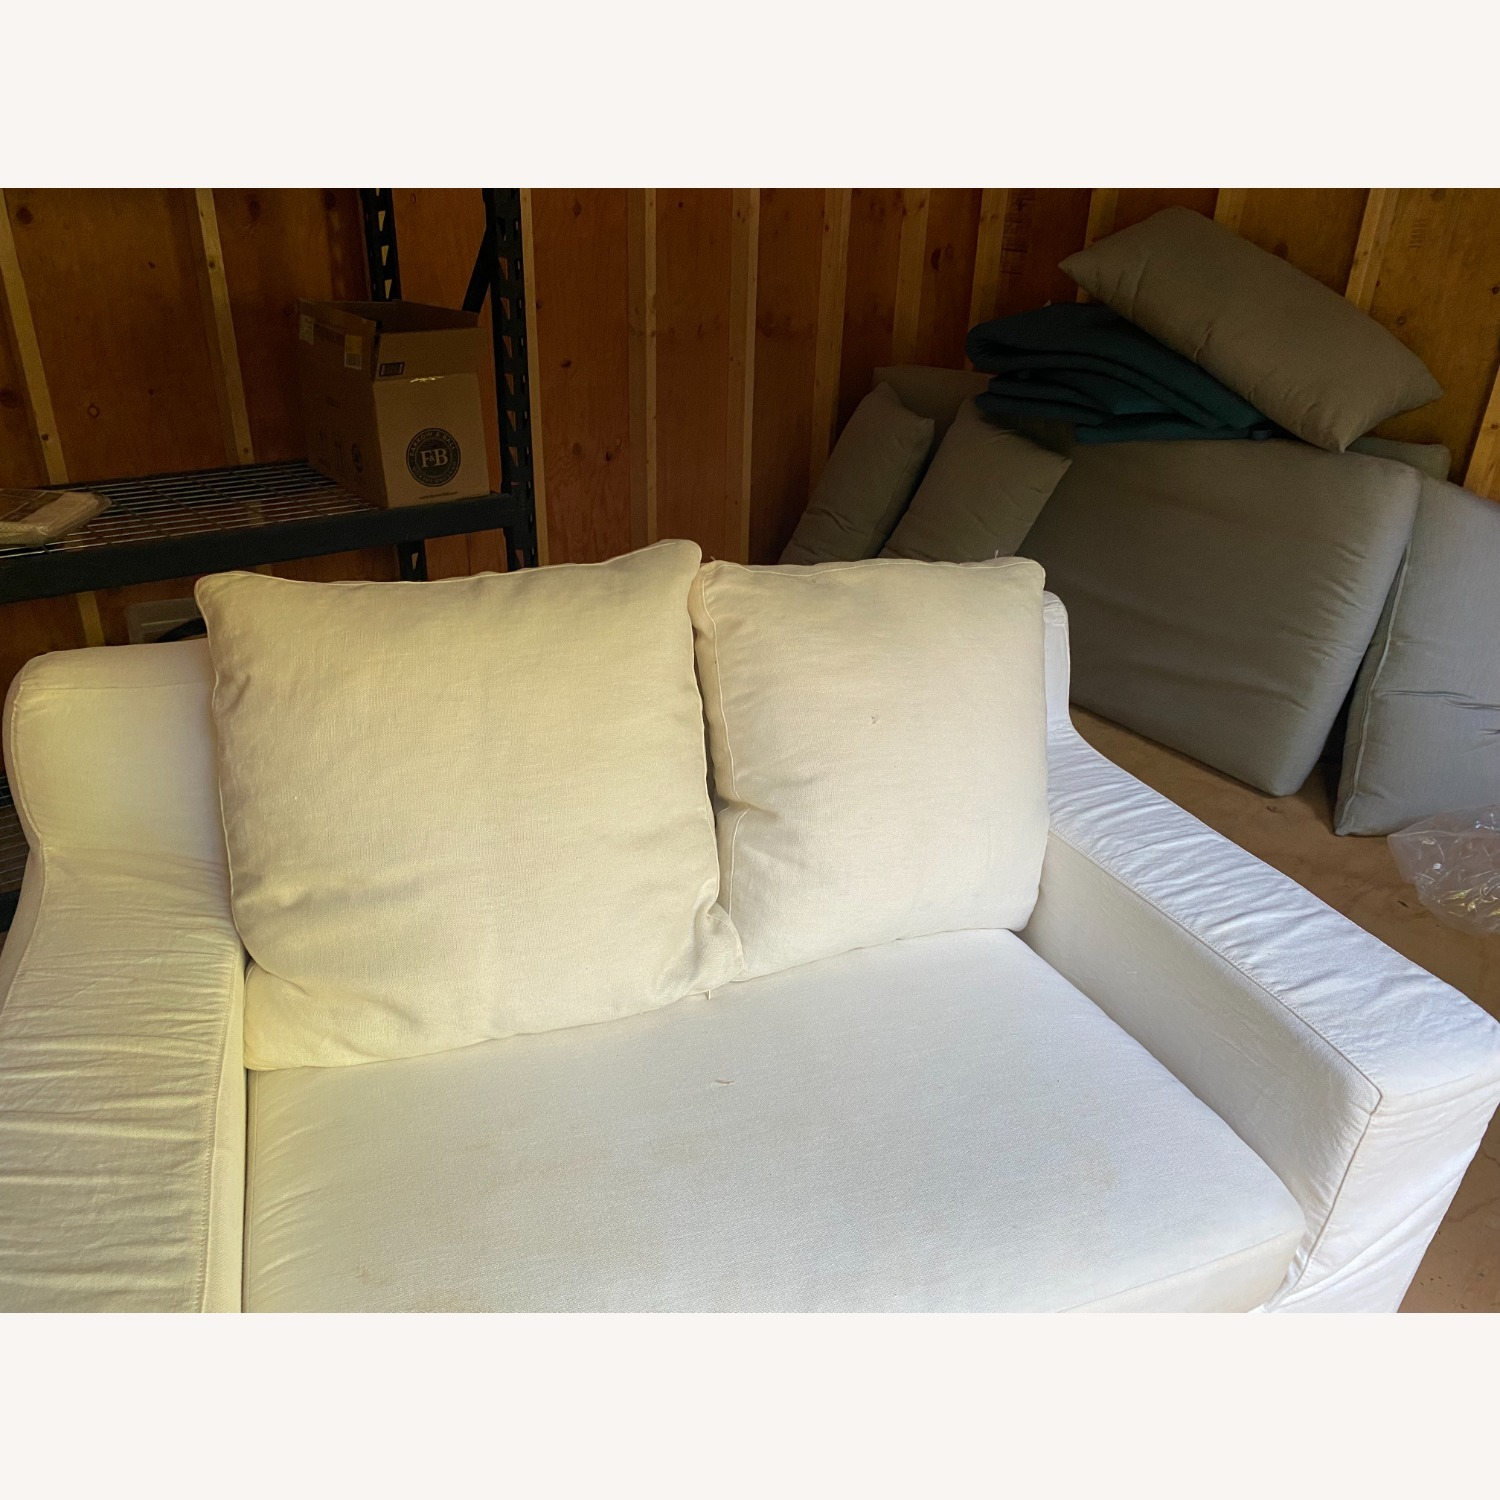 Crate & Barrel Extra Large White Linen Chair - image-7